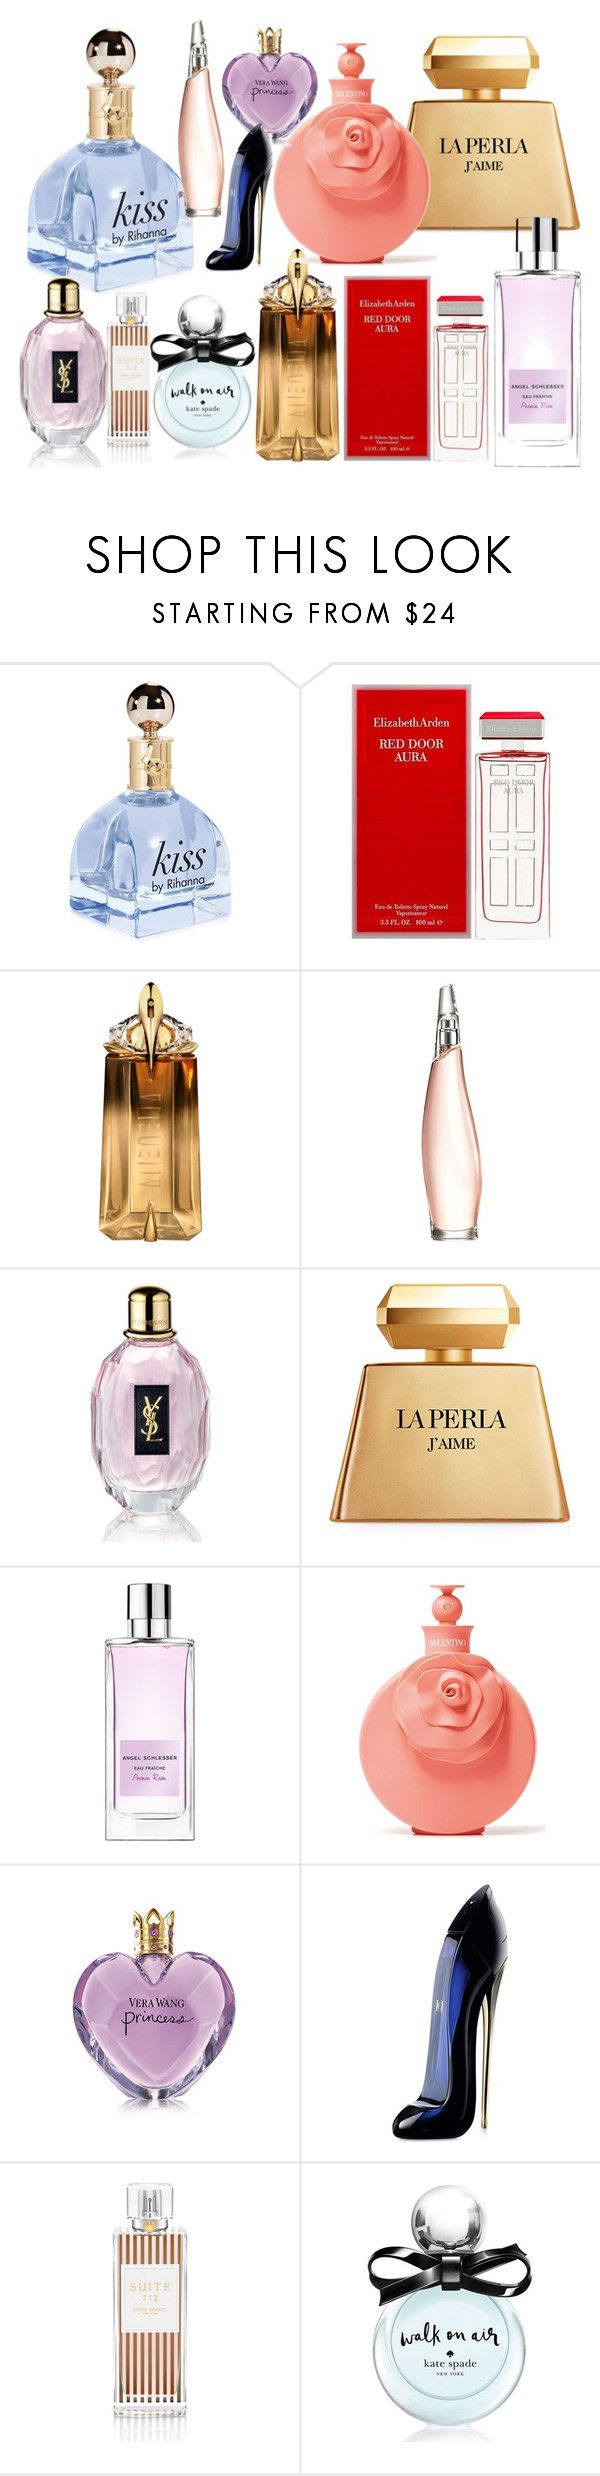 """Perfumes Fan #12"" by deykav1968 ❤ liked on Polyvore featuring beauty, Elizabeth Arden, Thierry Mugler, Donna Karan, Yves Saint Laurent, La Perla, Angel Schlesser, Valentino, Vera Wang and Carolina Herrera"